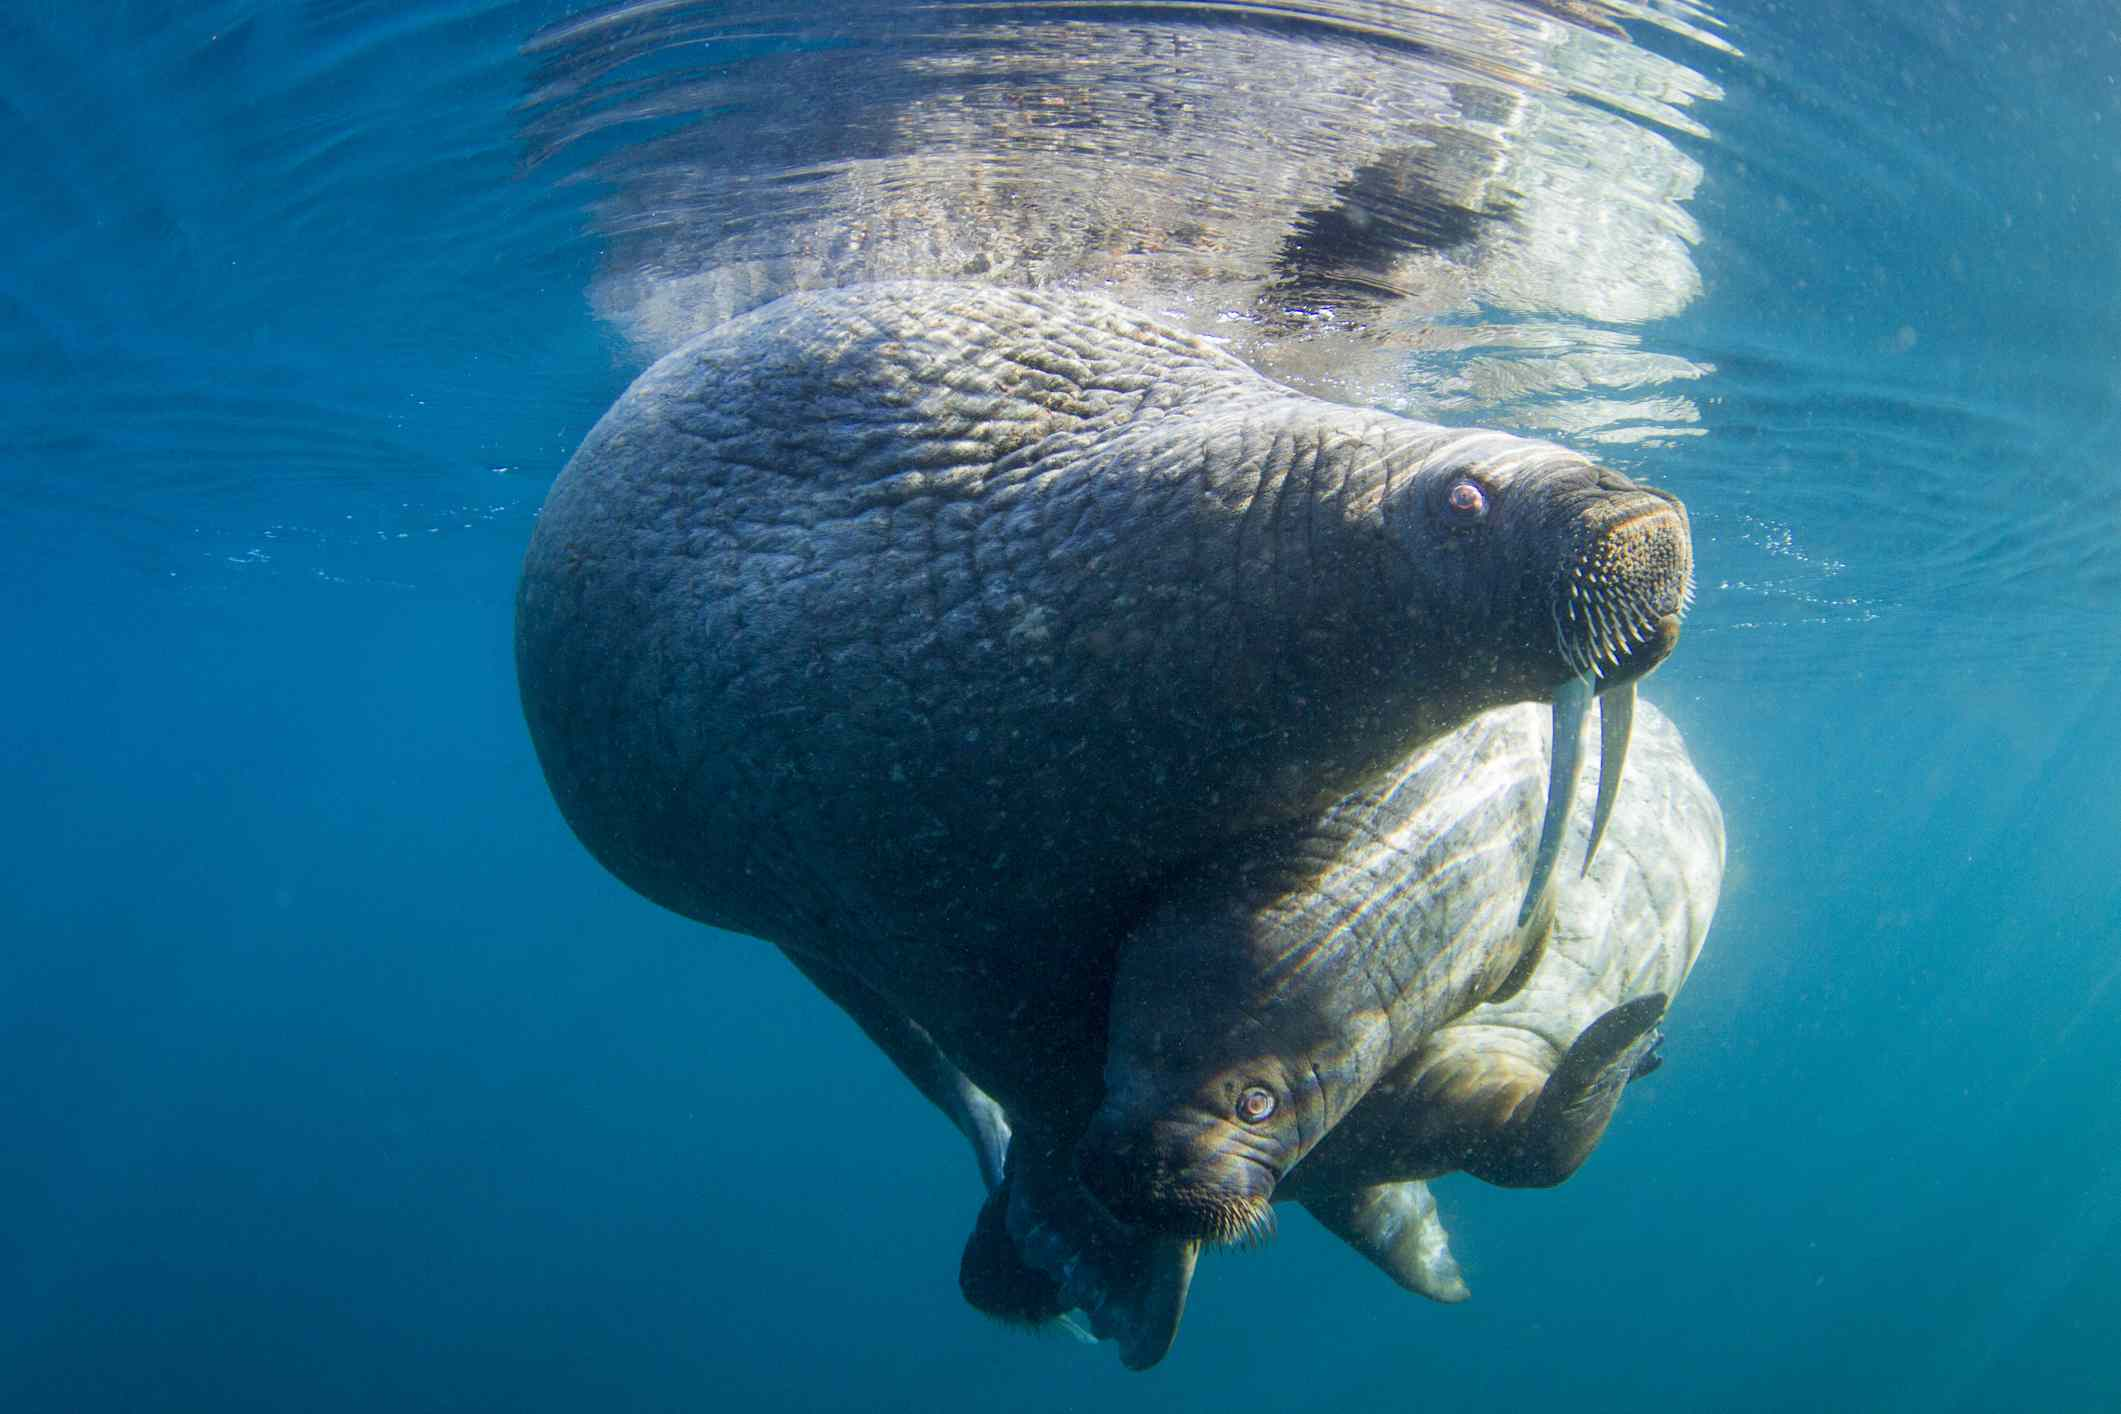 female walrus and calf floating together under the water's surface